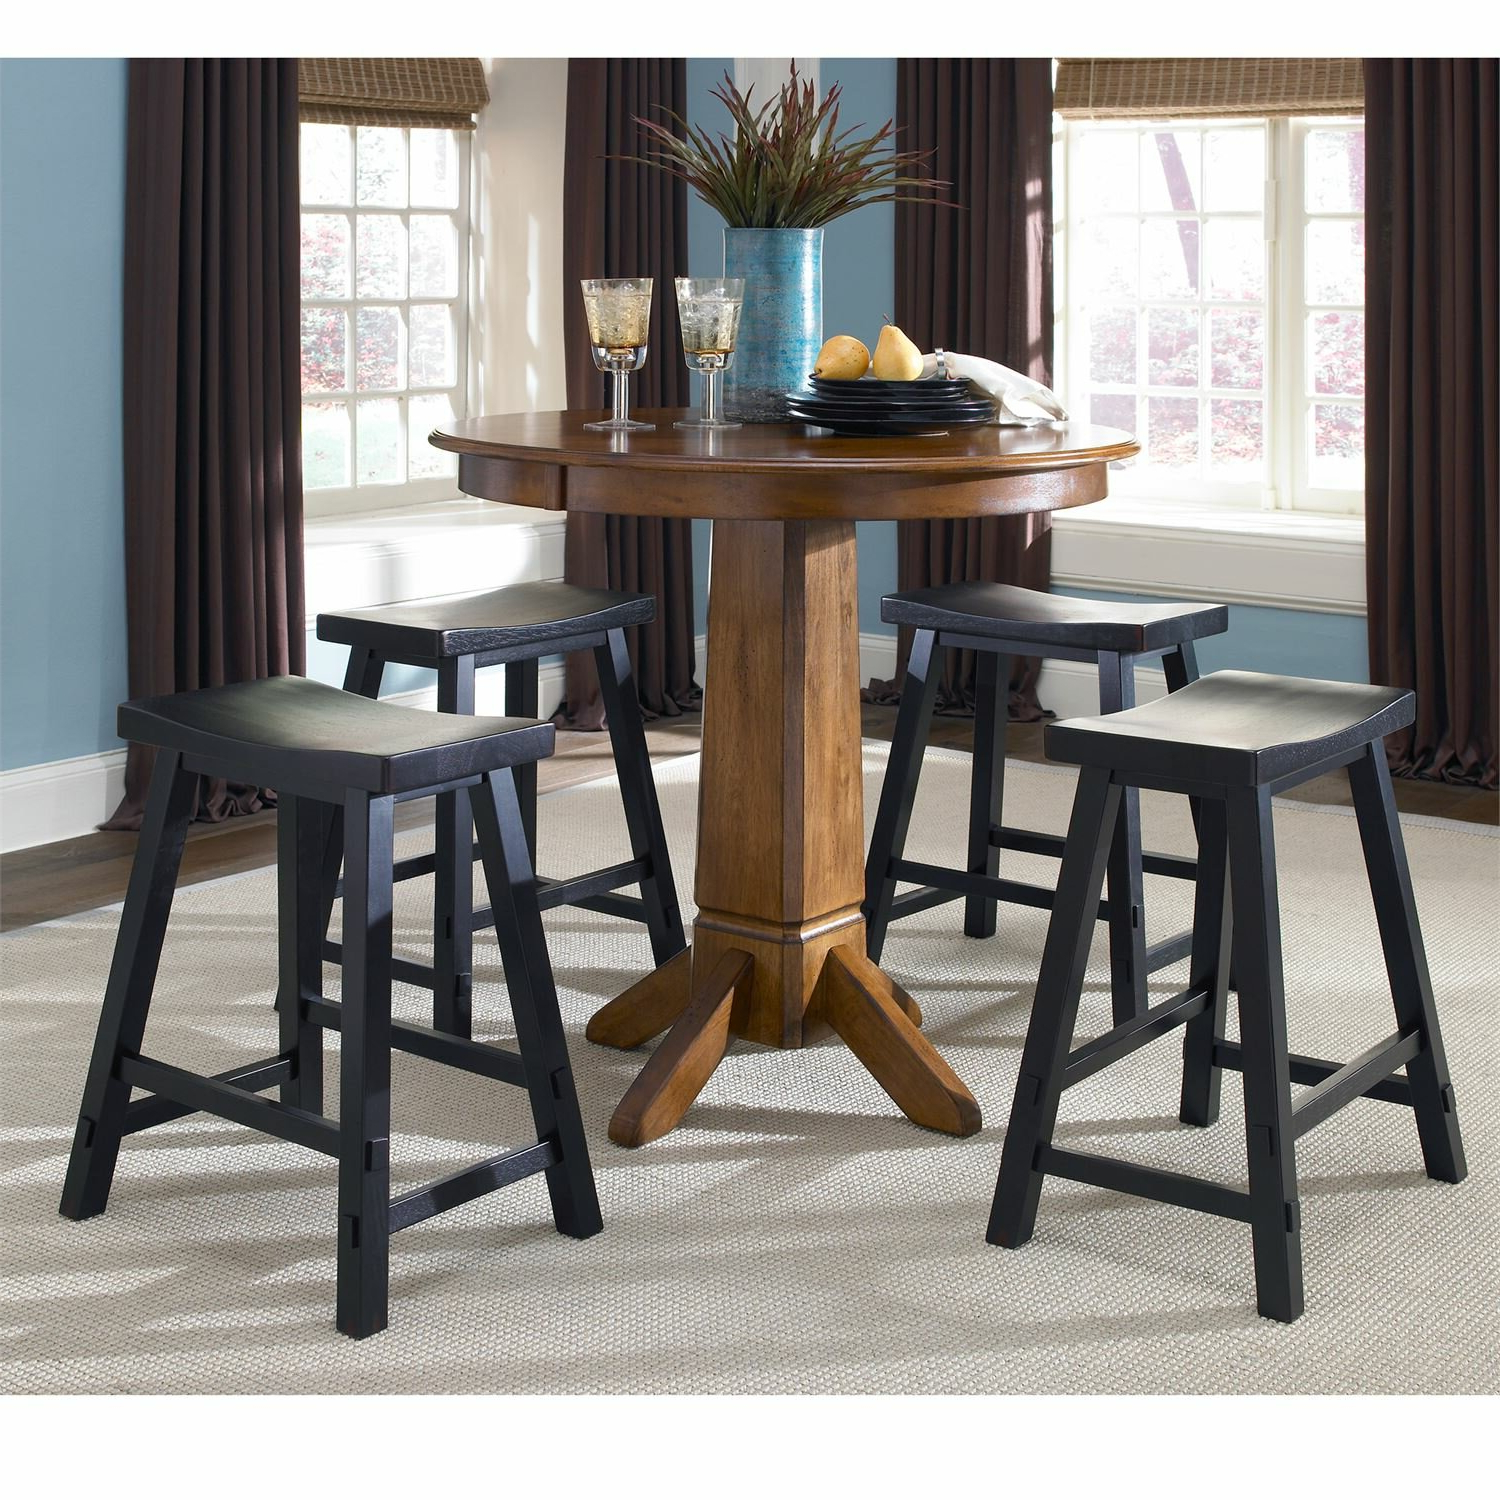 Wayfair Within Winsted 4 Piece Counter Height Dining Sets (View 20 of 25)